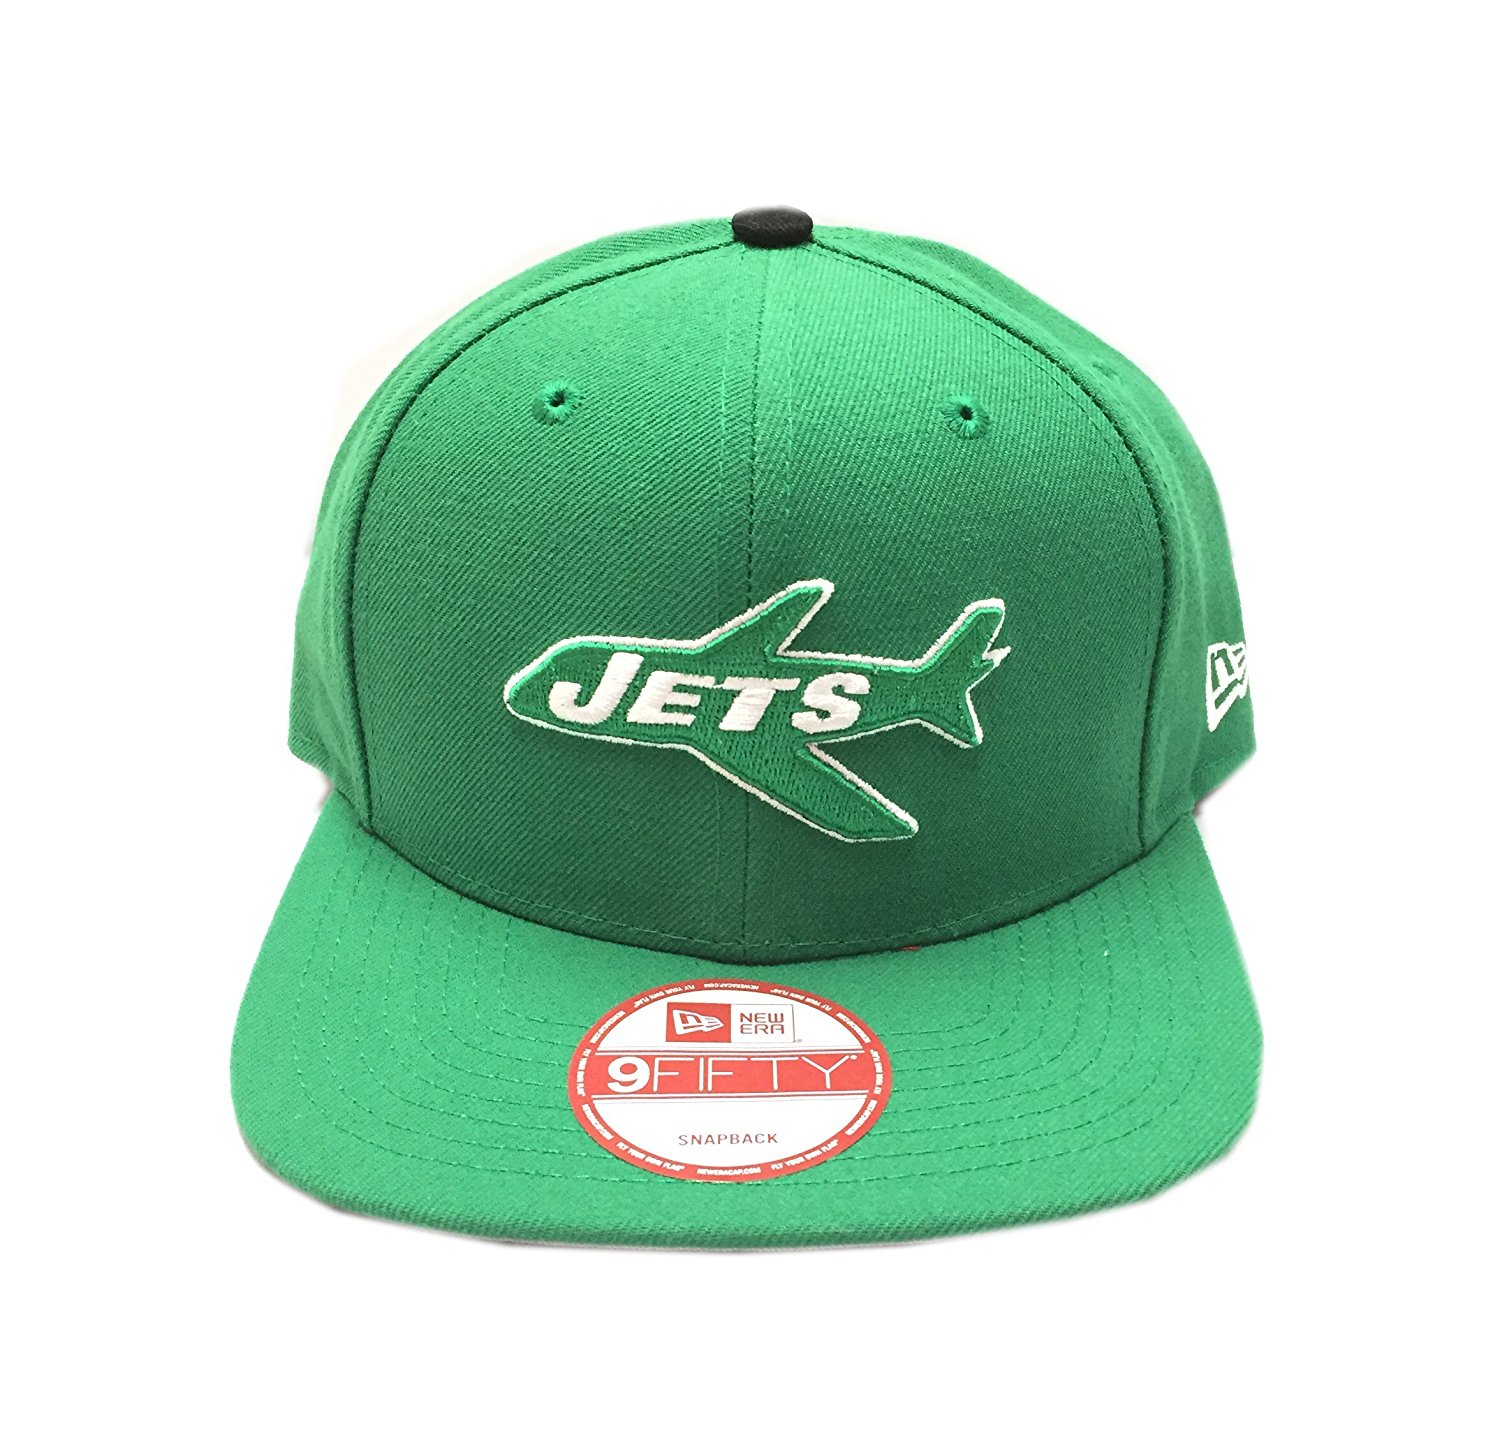 7adbce0d3fd82 Get Quotations · New Era New York Jets NFL Historic Vintage 9FIFTY Snapback  Cap